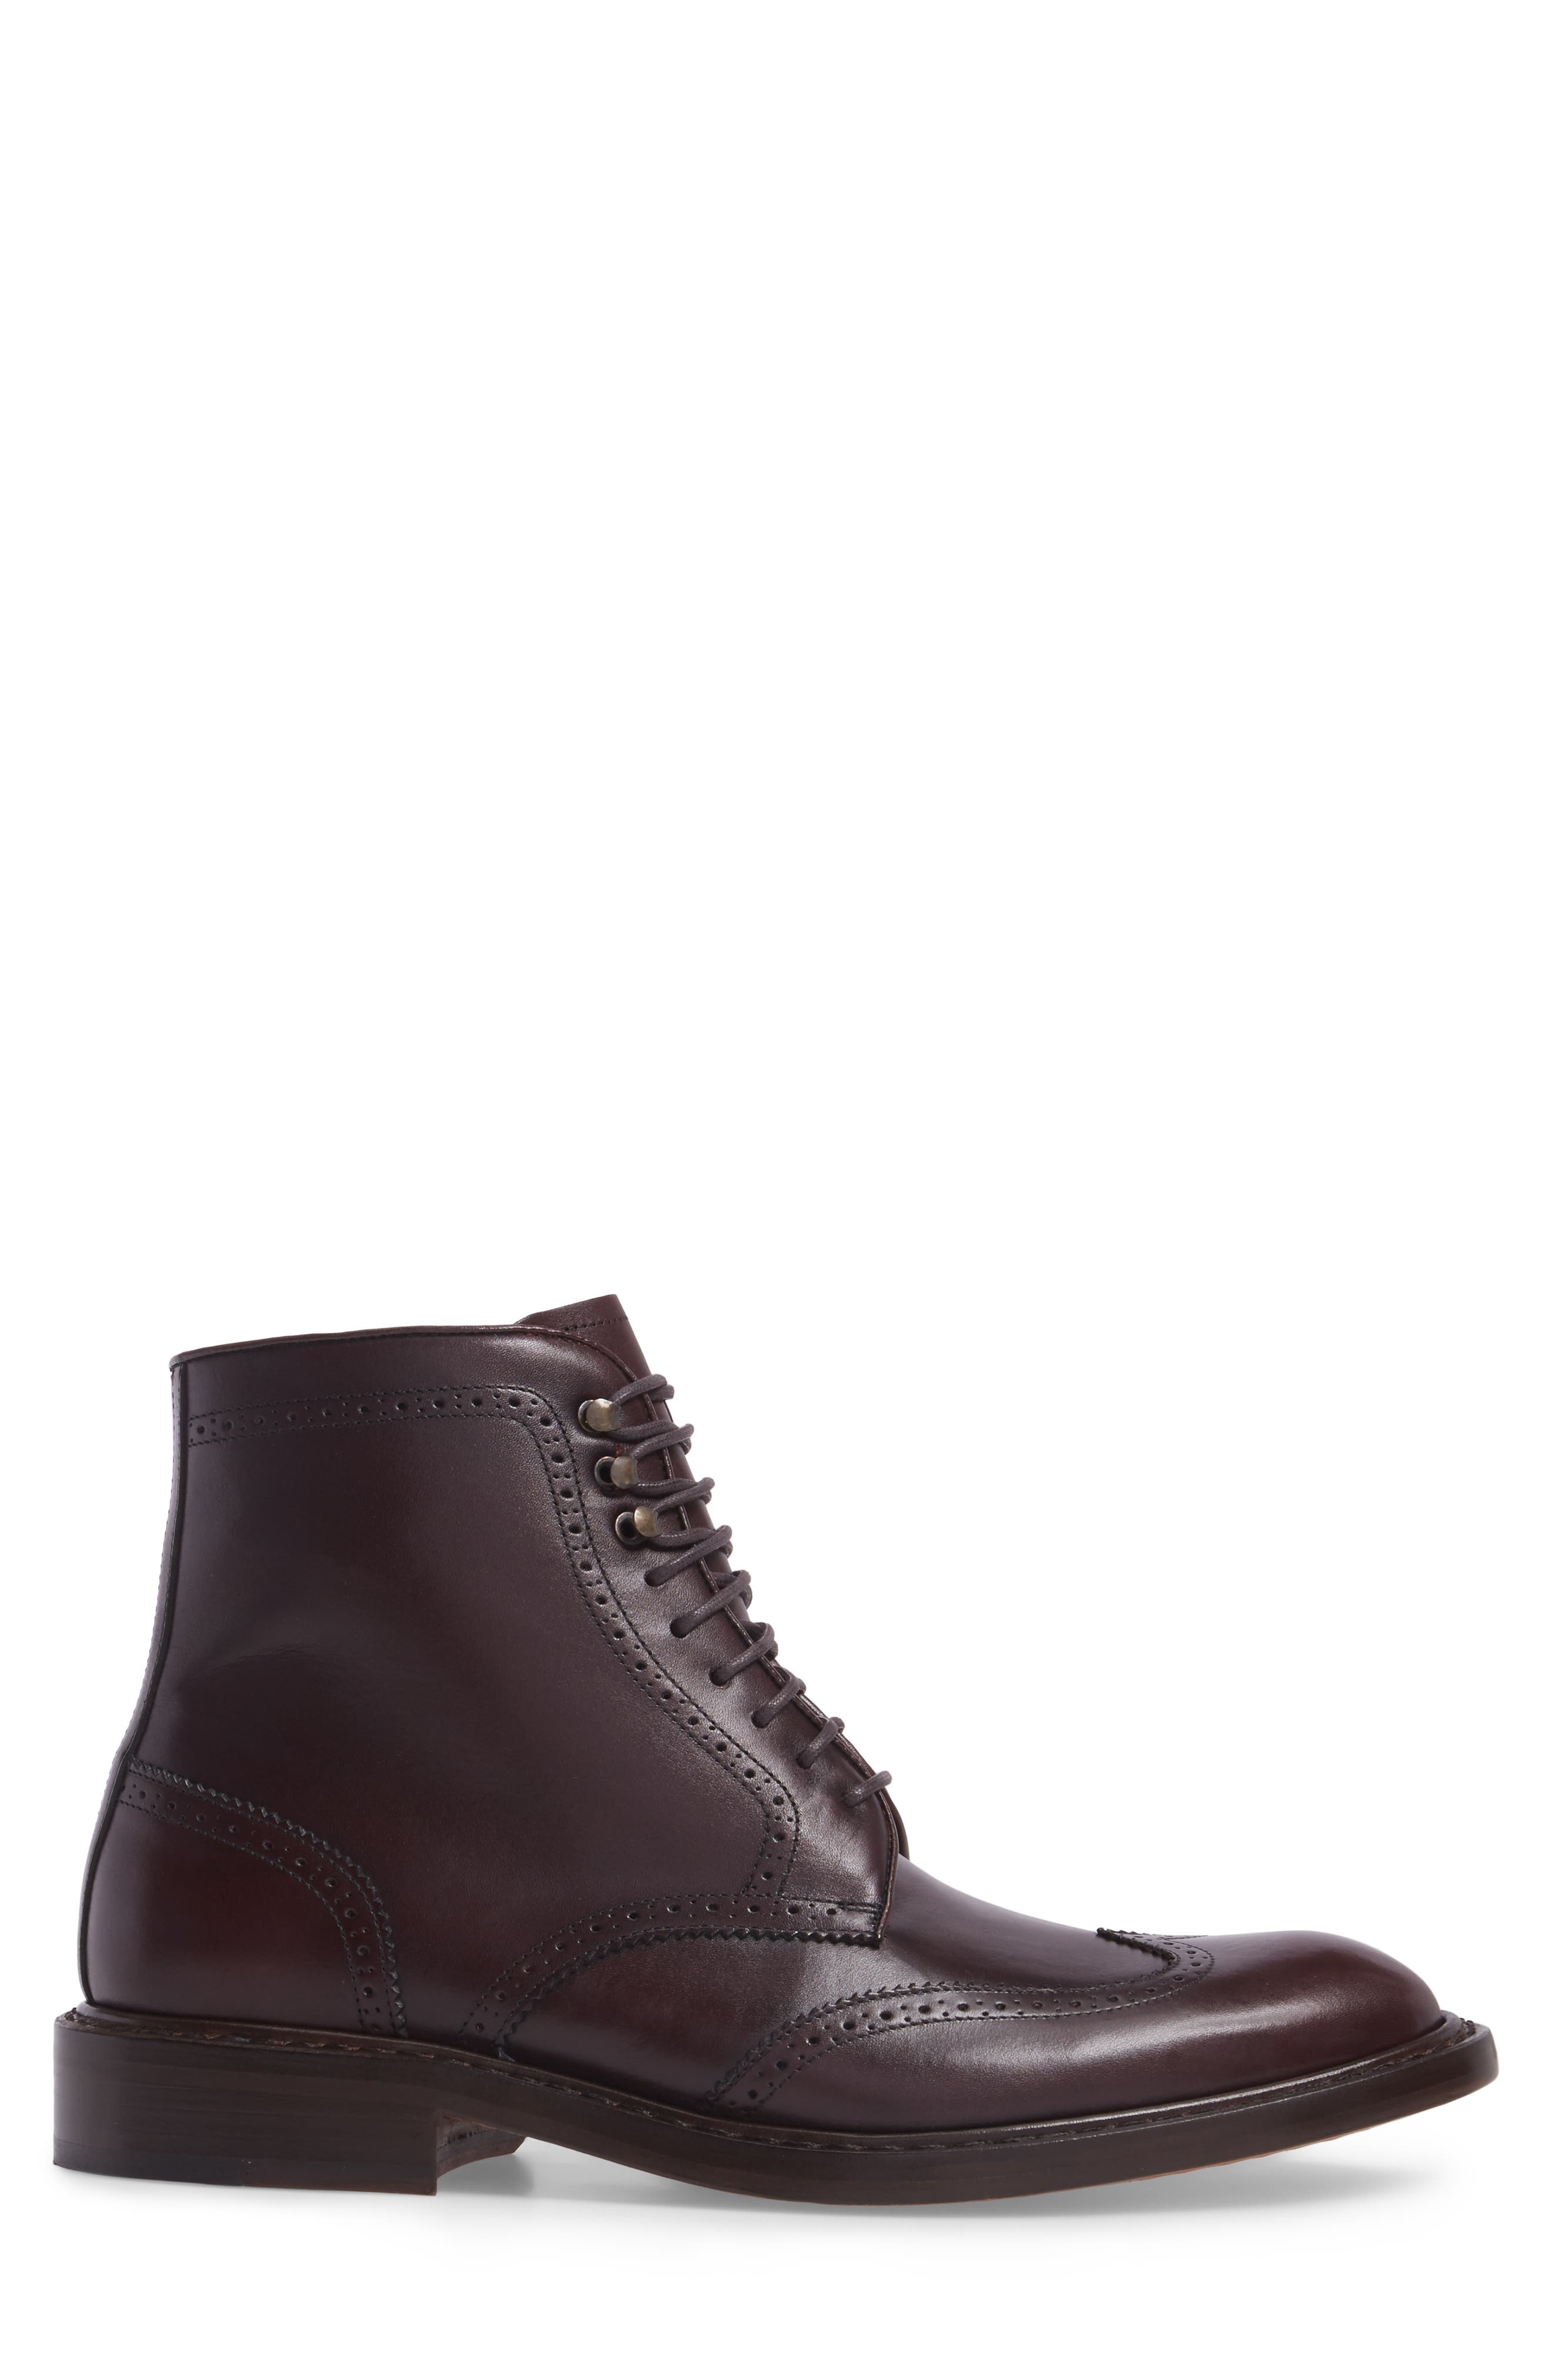 Carter Wingtip Boot,                             Alternate thumbnail 3, color,                             BURGUNDY LEATHER